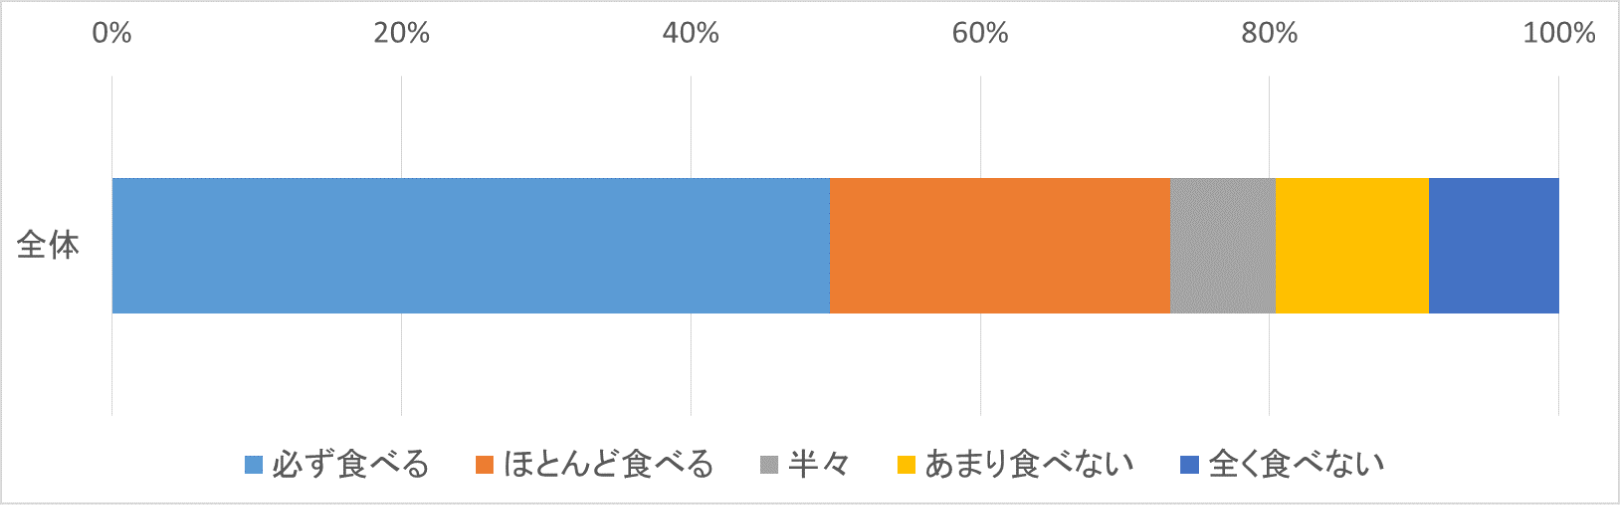 201809-03-fig-01.png